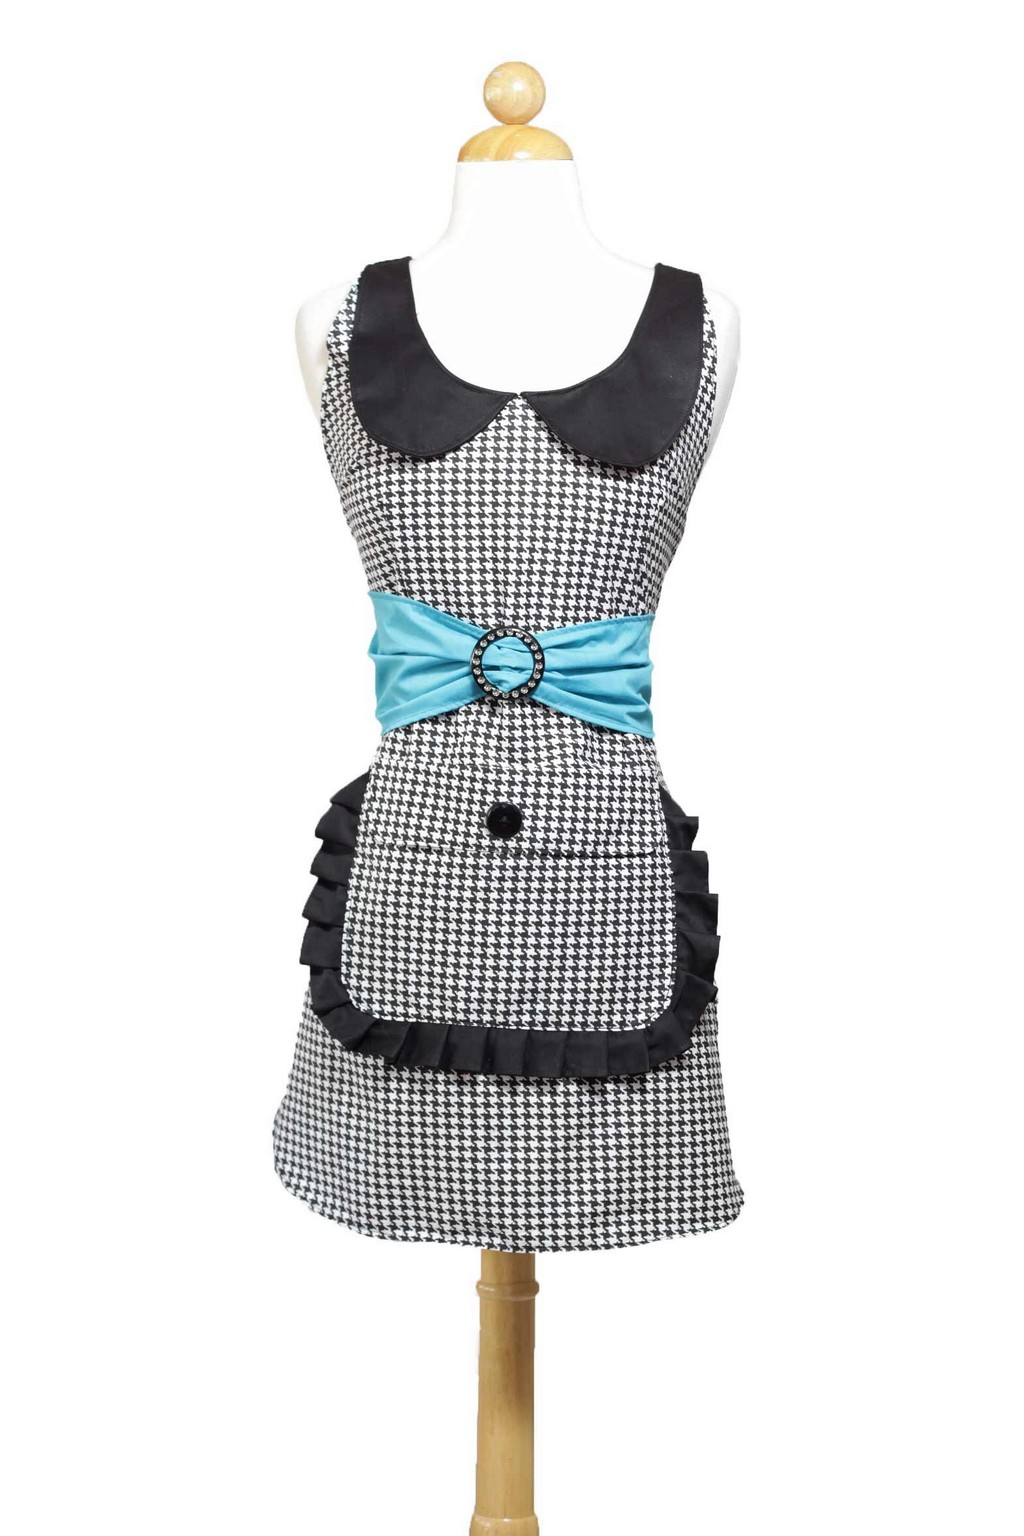 wholesale aprons, personalized aprons, betty boop aprons, aprons vintage crochet patterns free